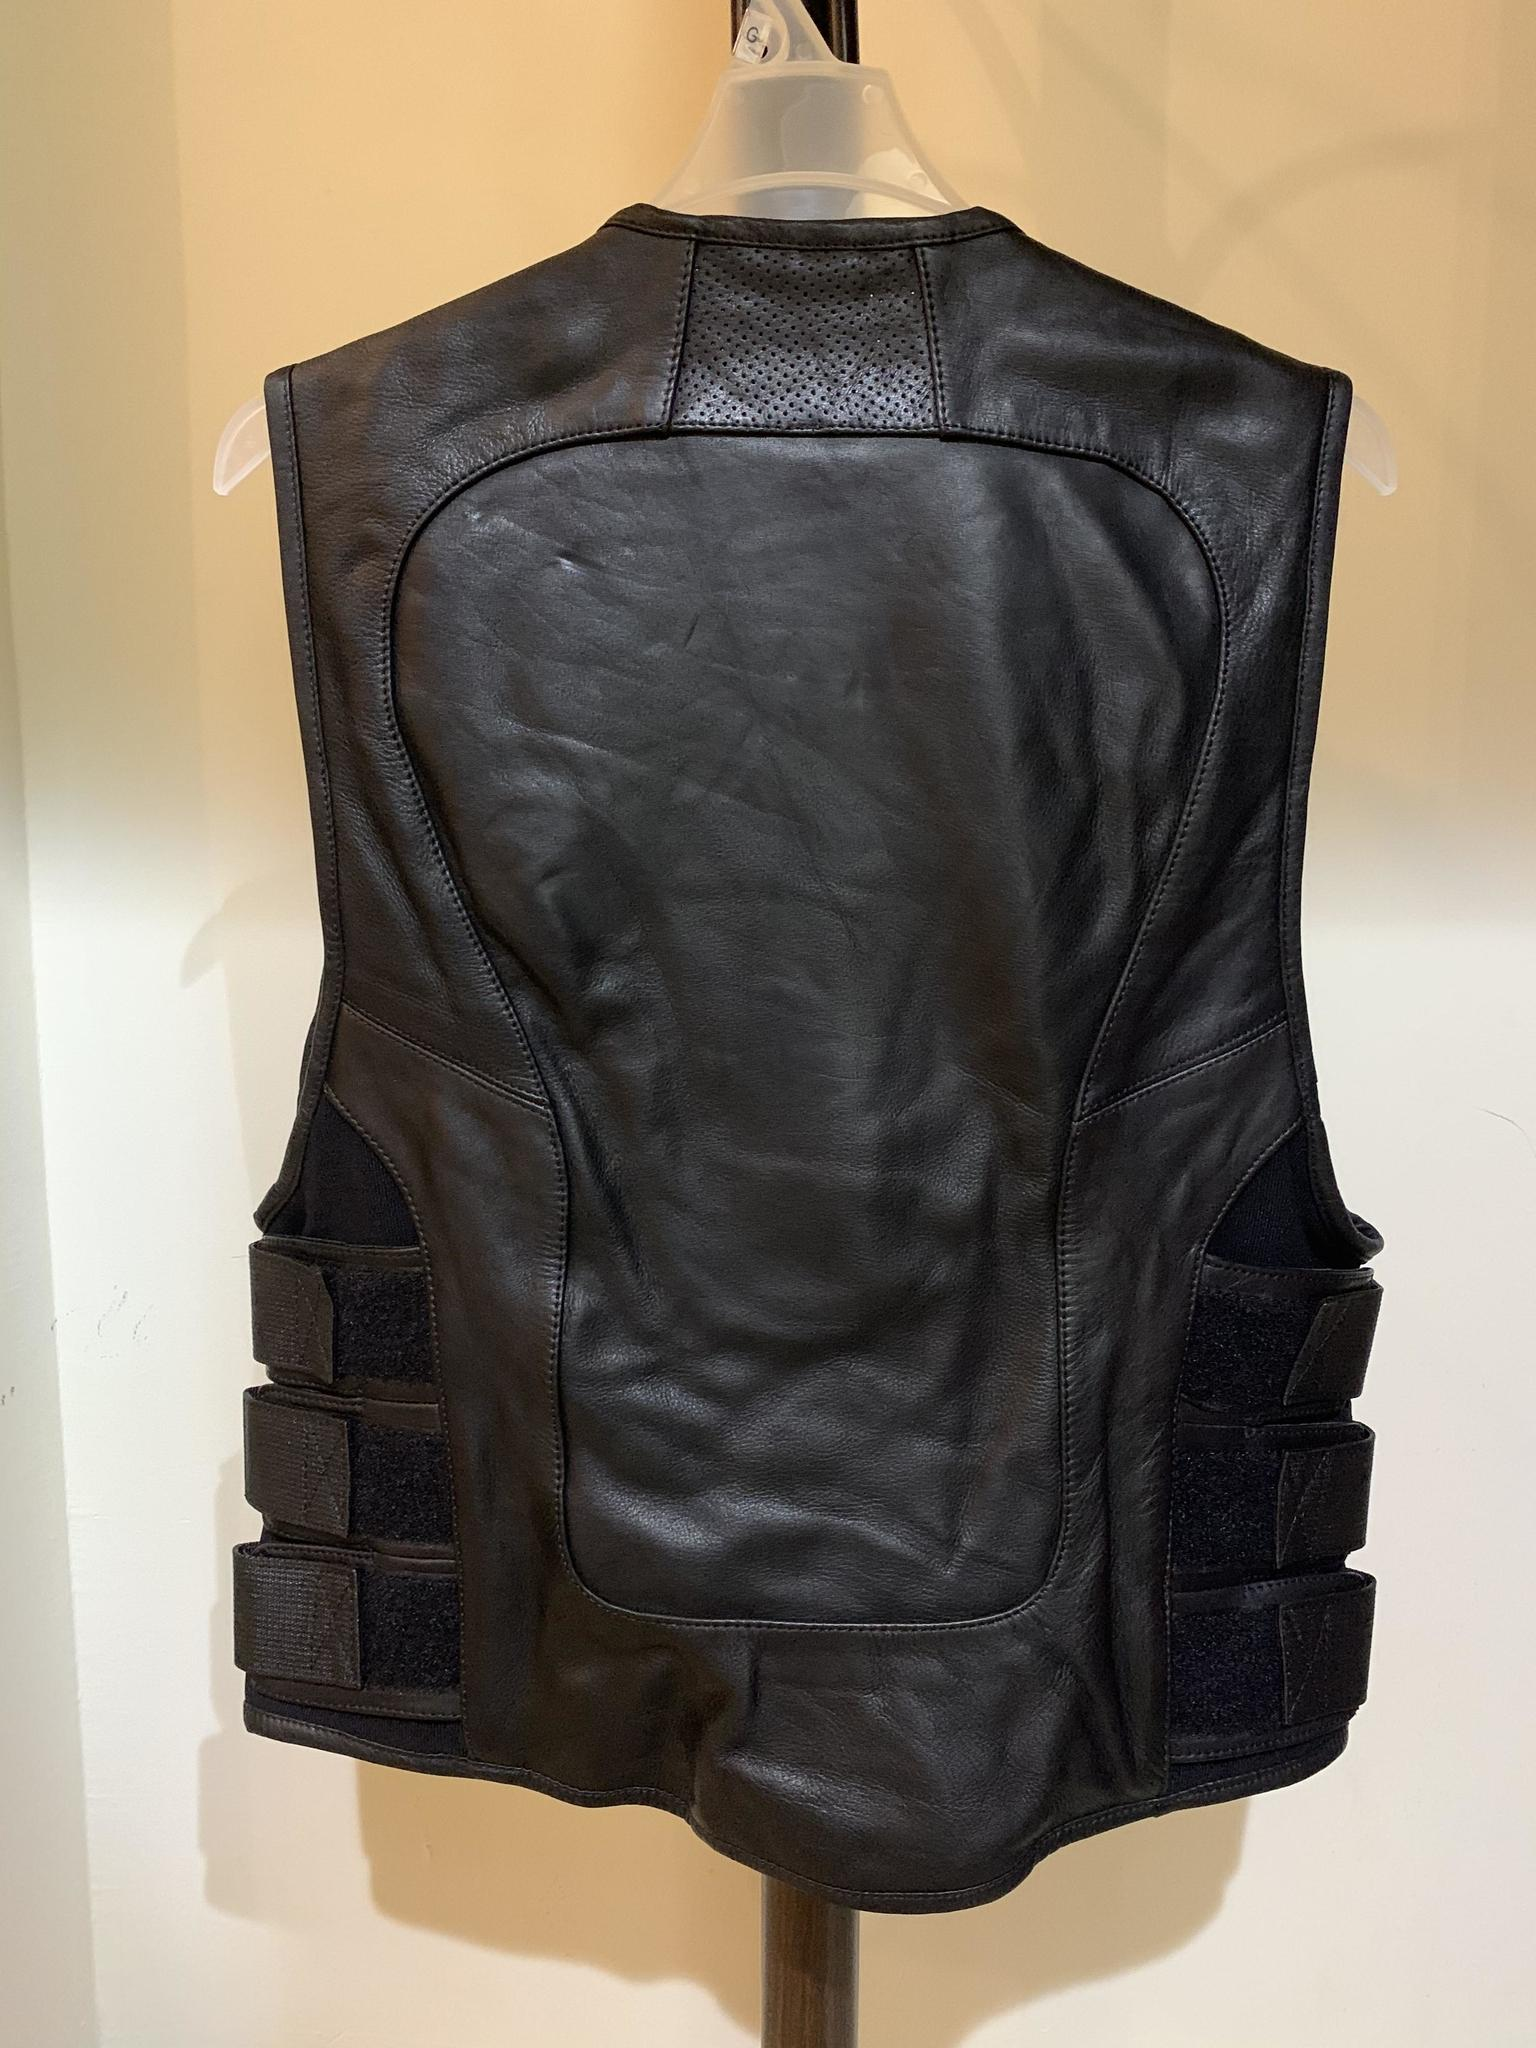 Biker Leather Vest Large with protection